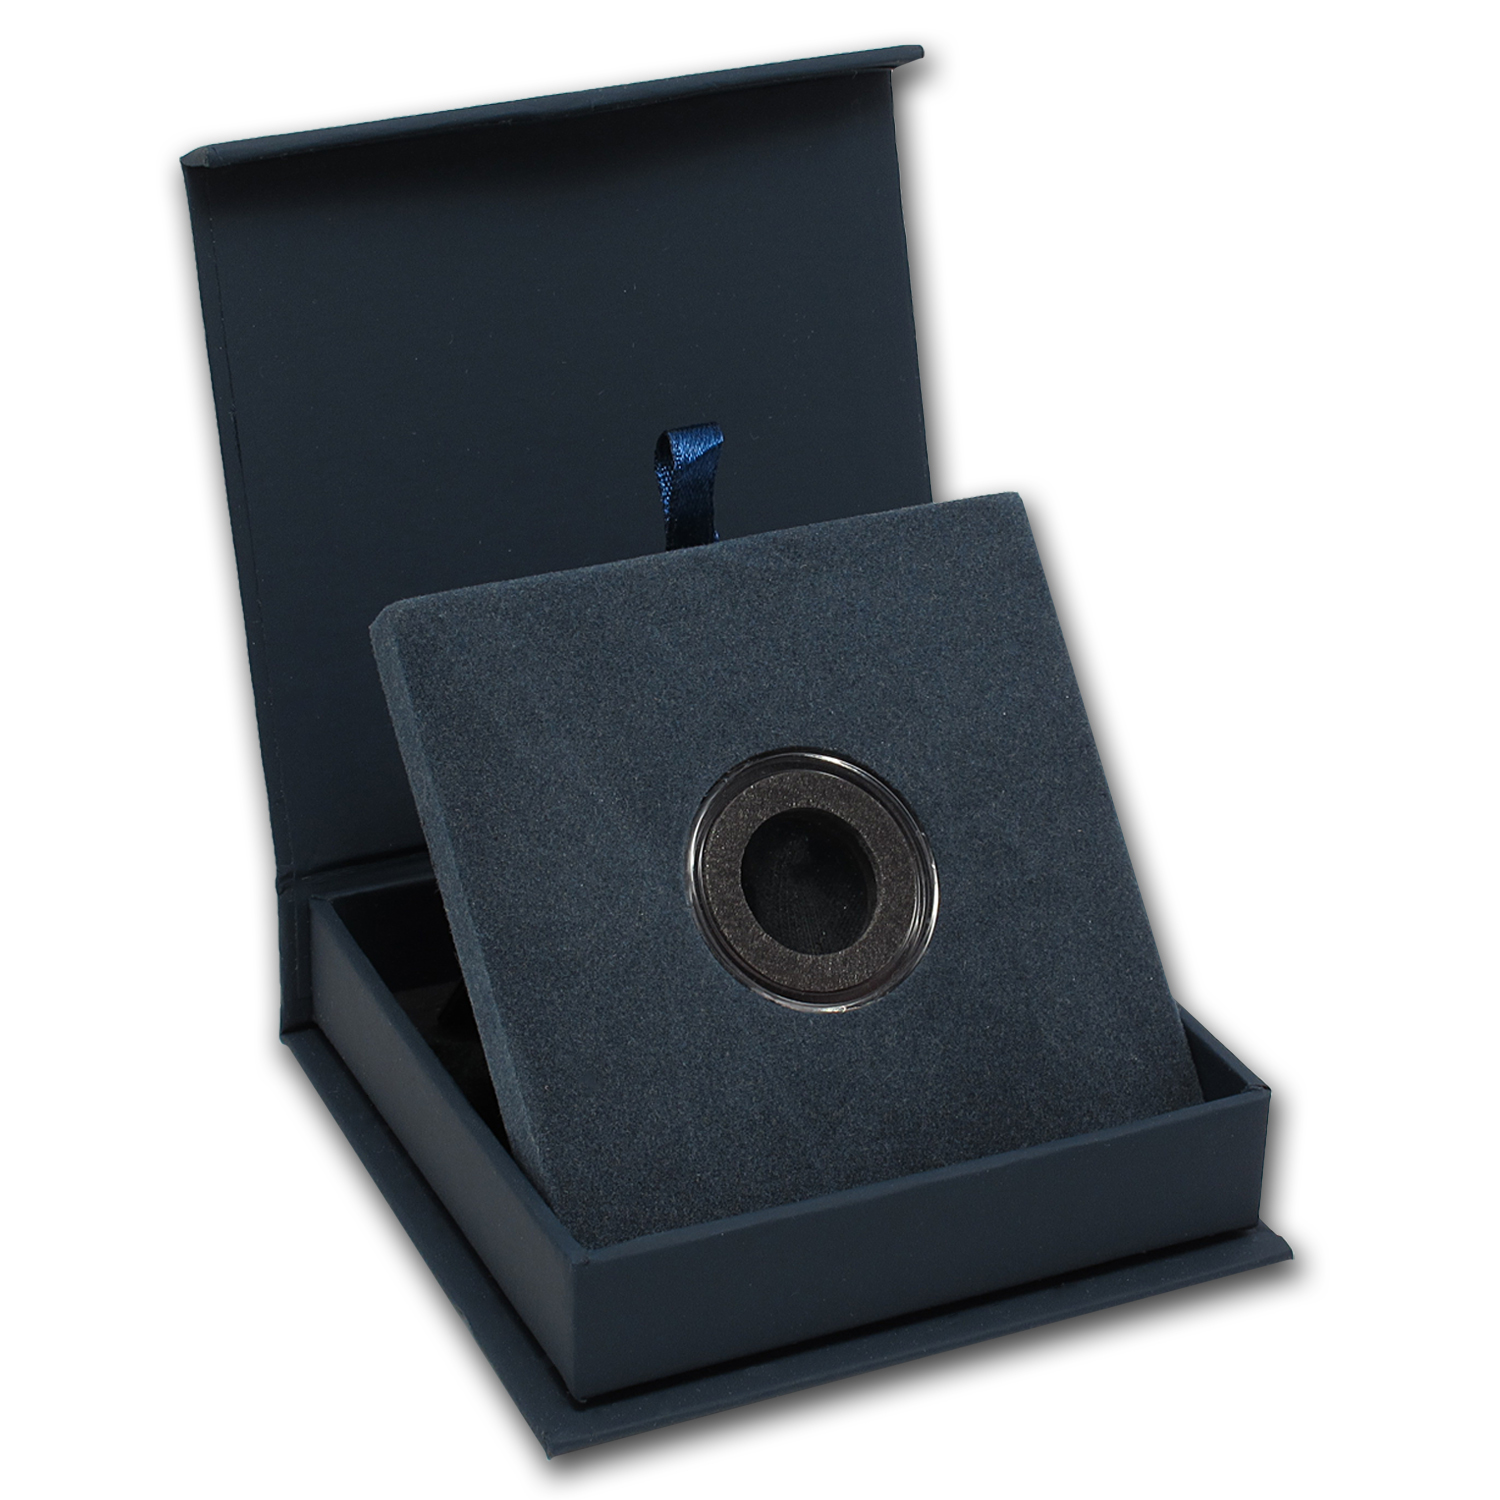 APMEX Gift Box - Includes 17 mm Air-Tite Holder with Gasket